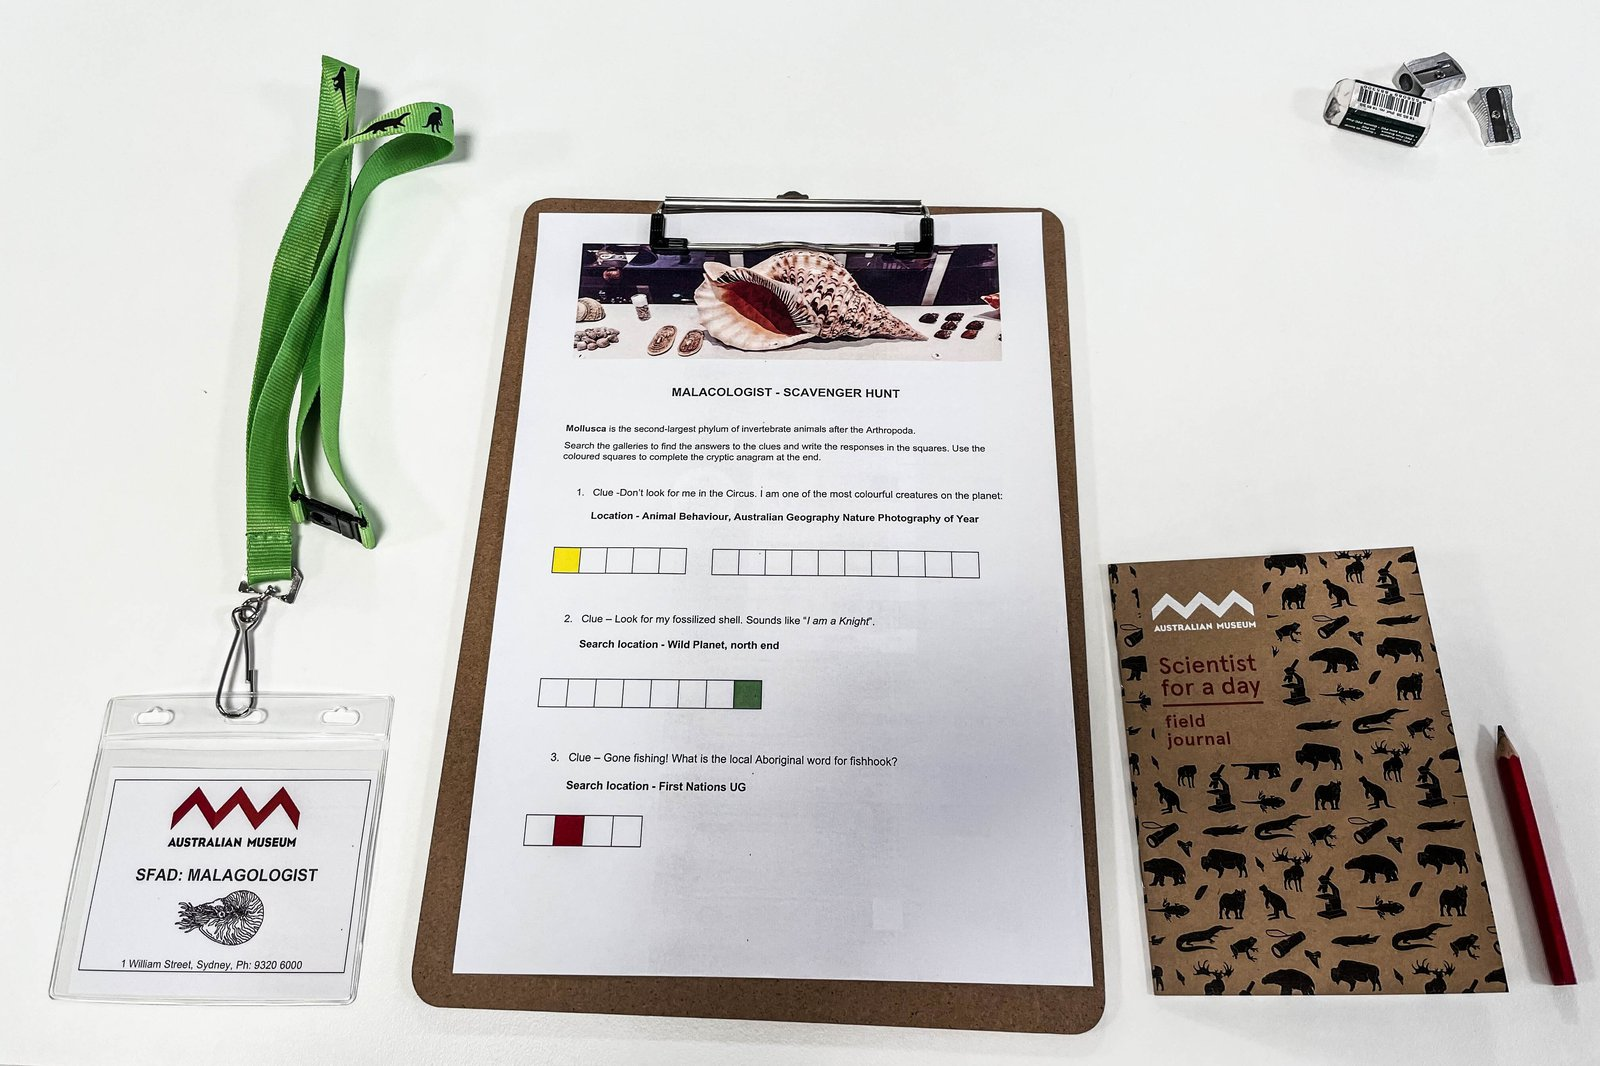 Scientist for a Day Malacologist field journal